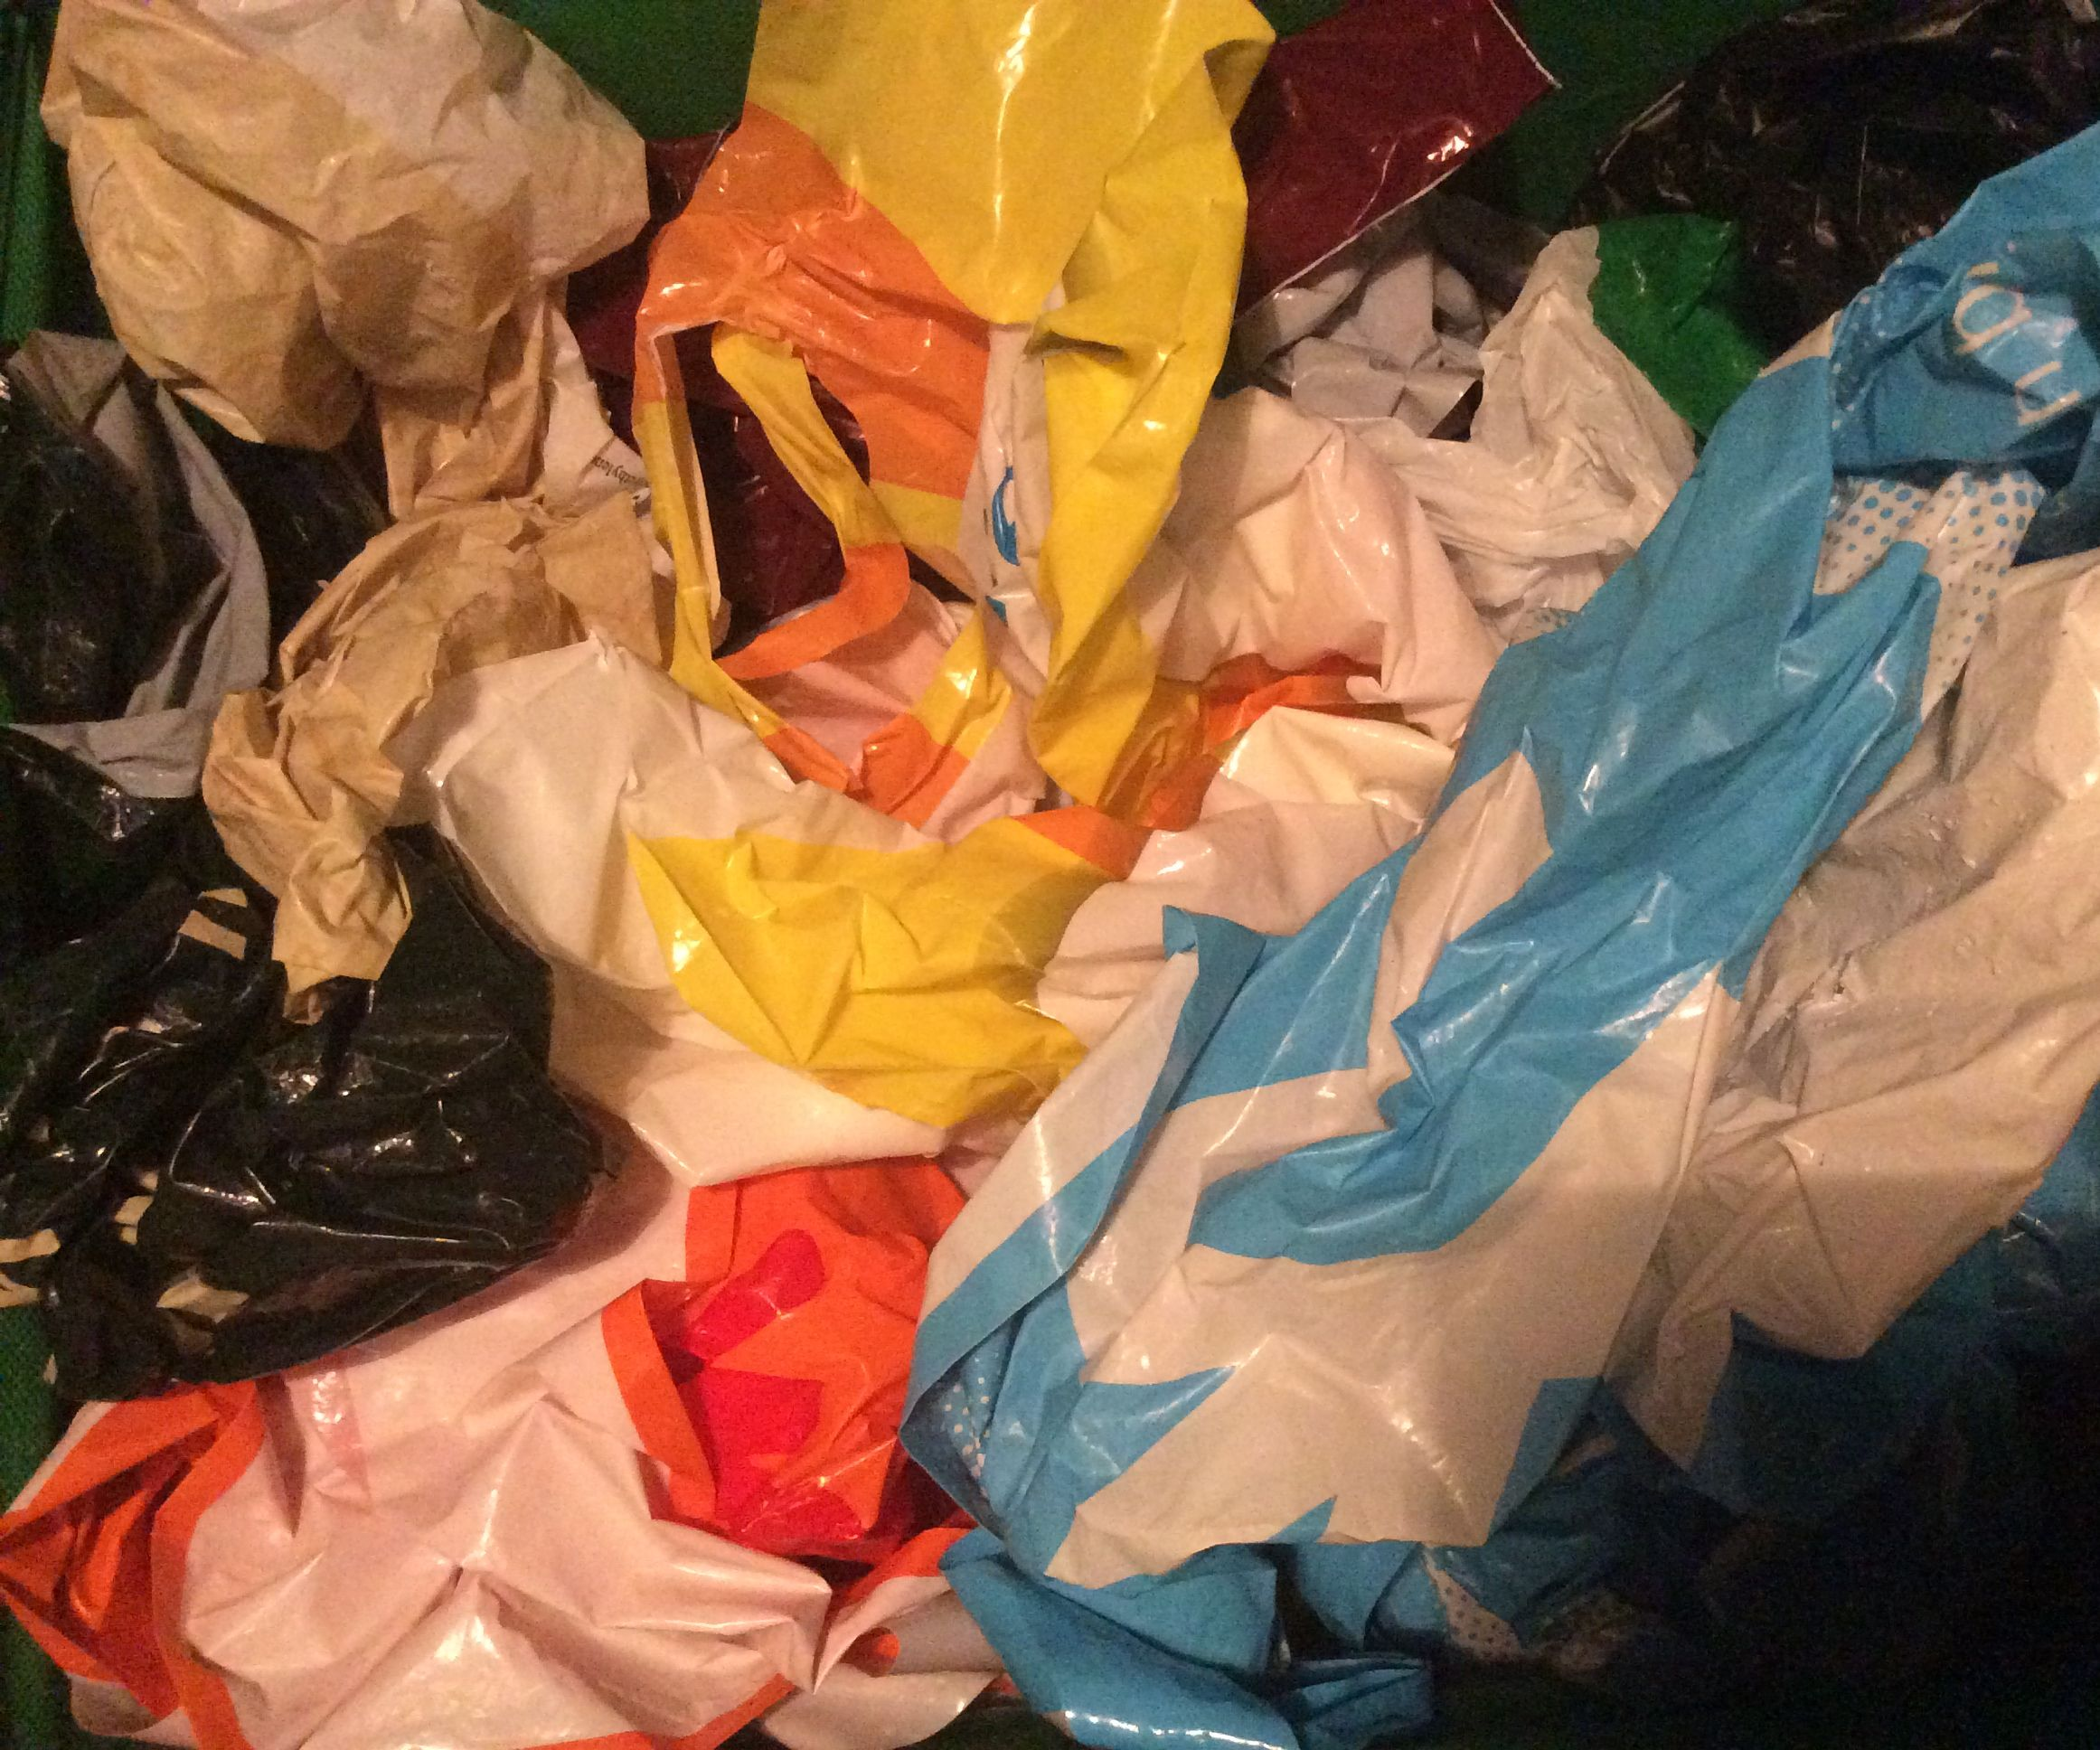 How to fold a plastic bag